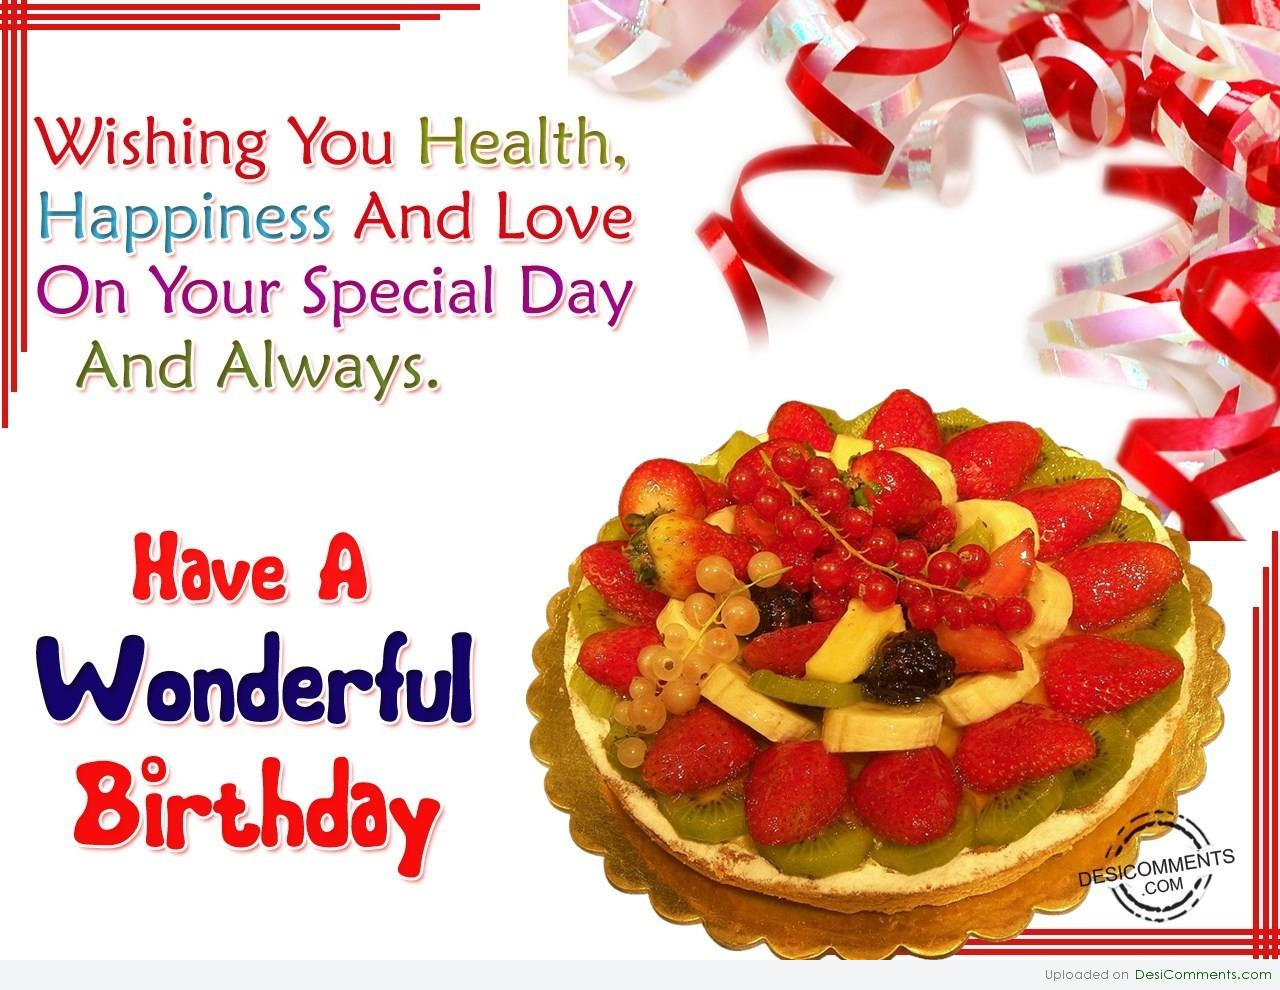 Have A Wonderful Birthday Desicomments Com